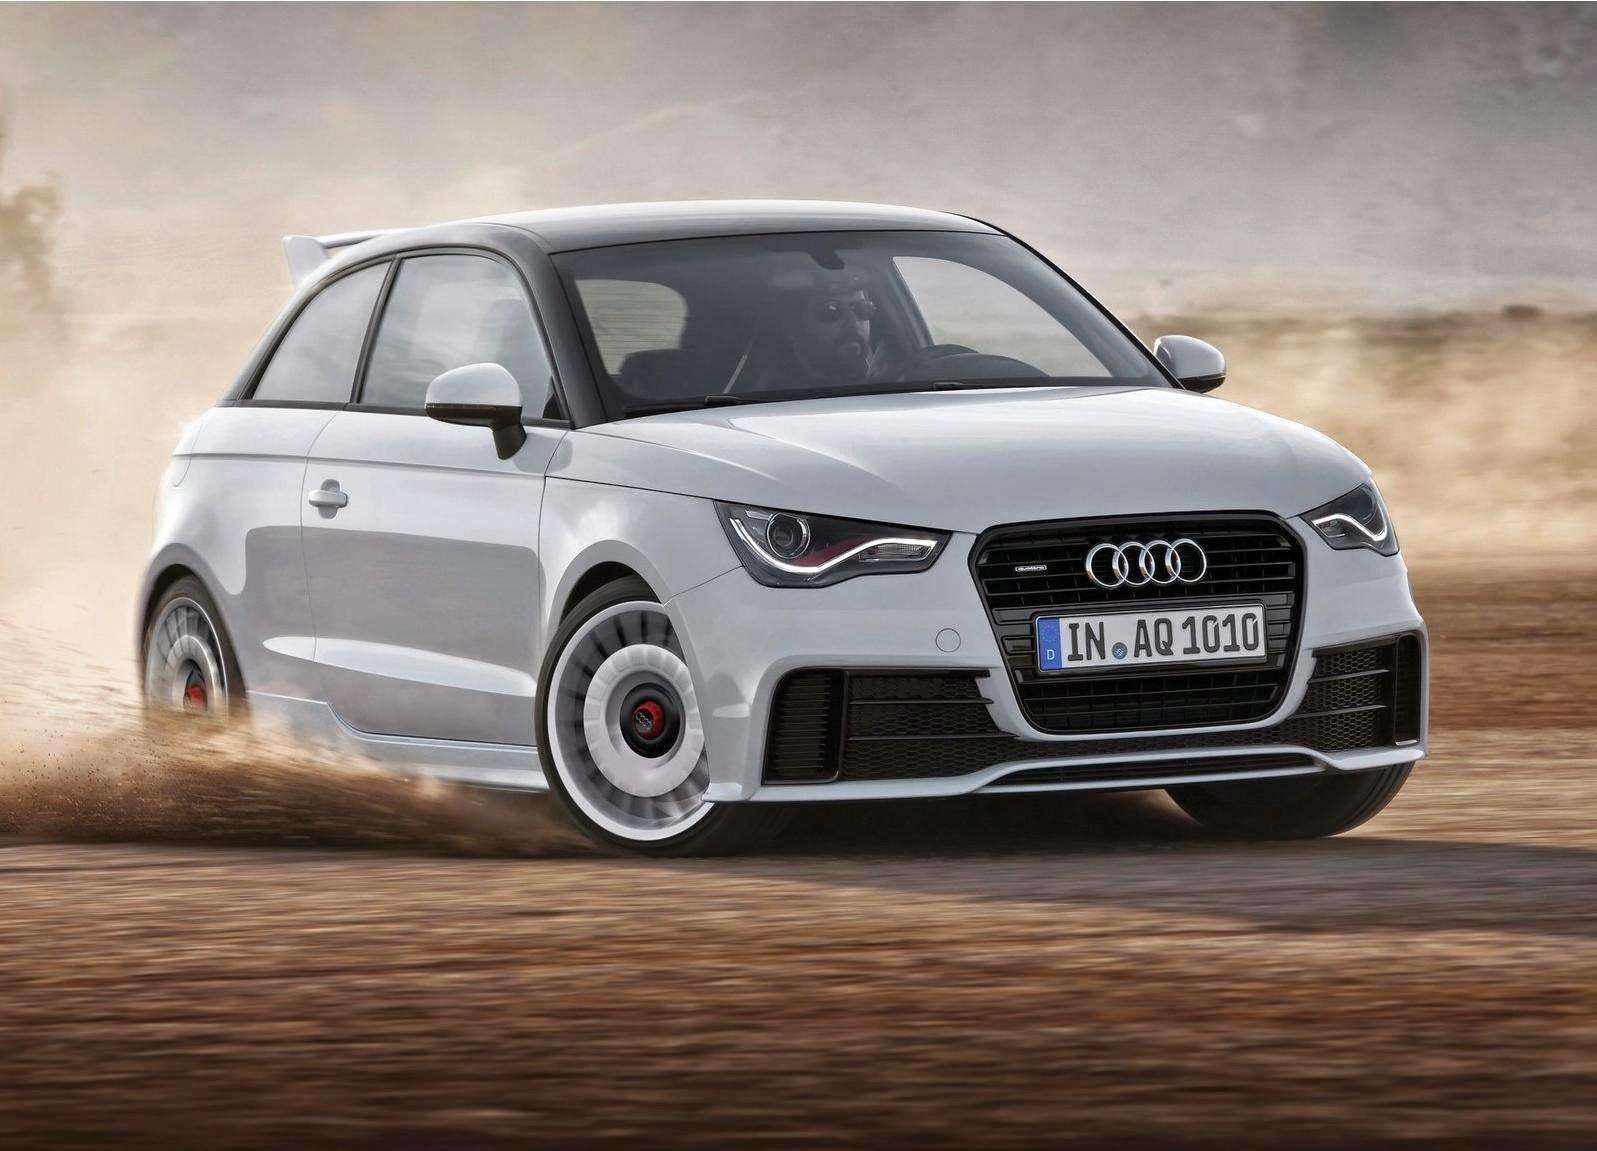 Audi A1 quattro 2013 Widescreen DesktopWallpaper